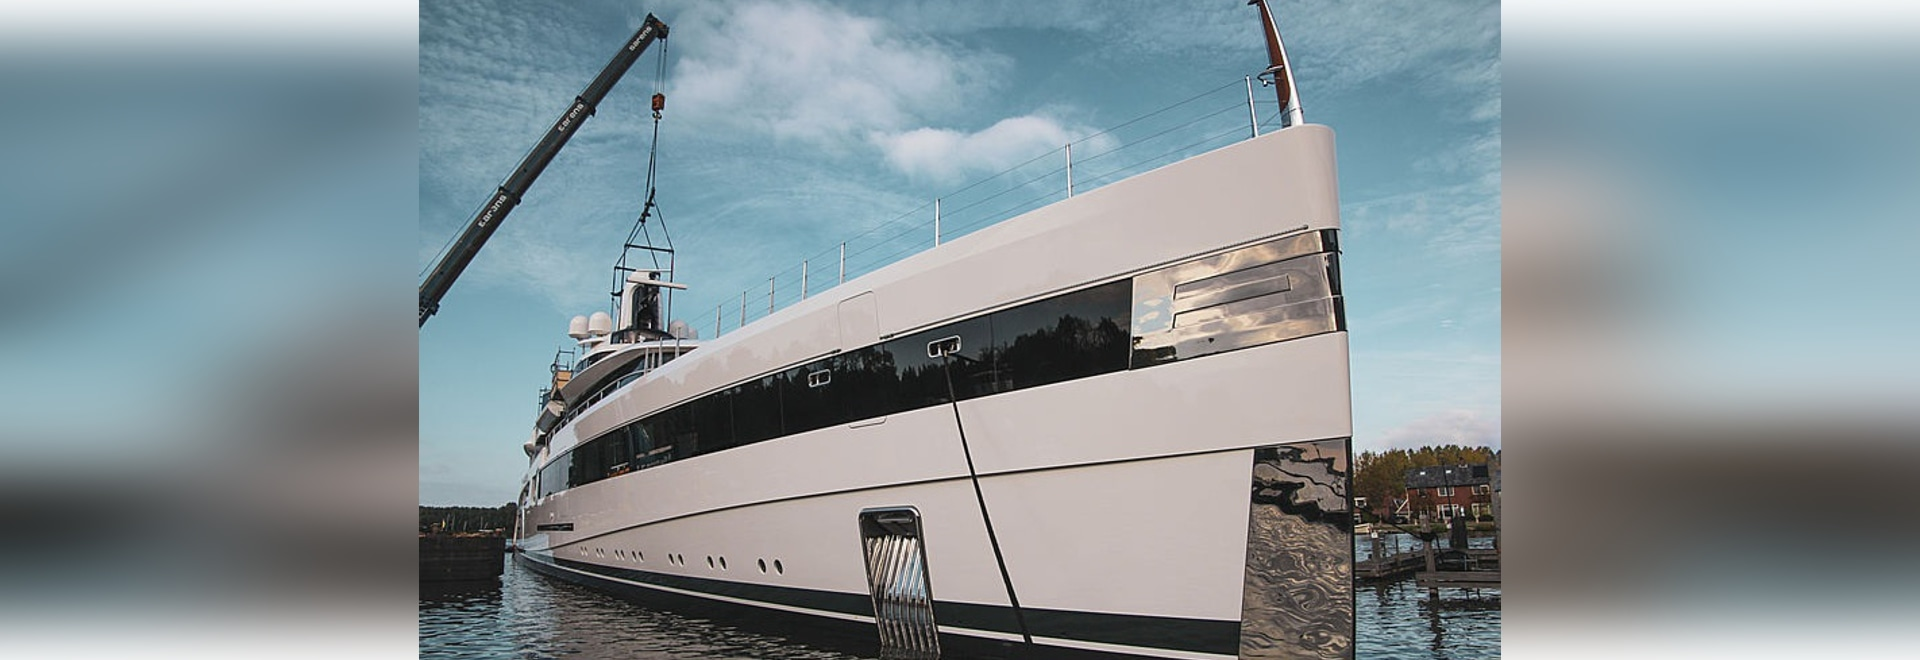 Everything you need to know about Feadship's new 93m Project 814